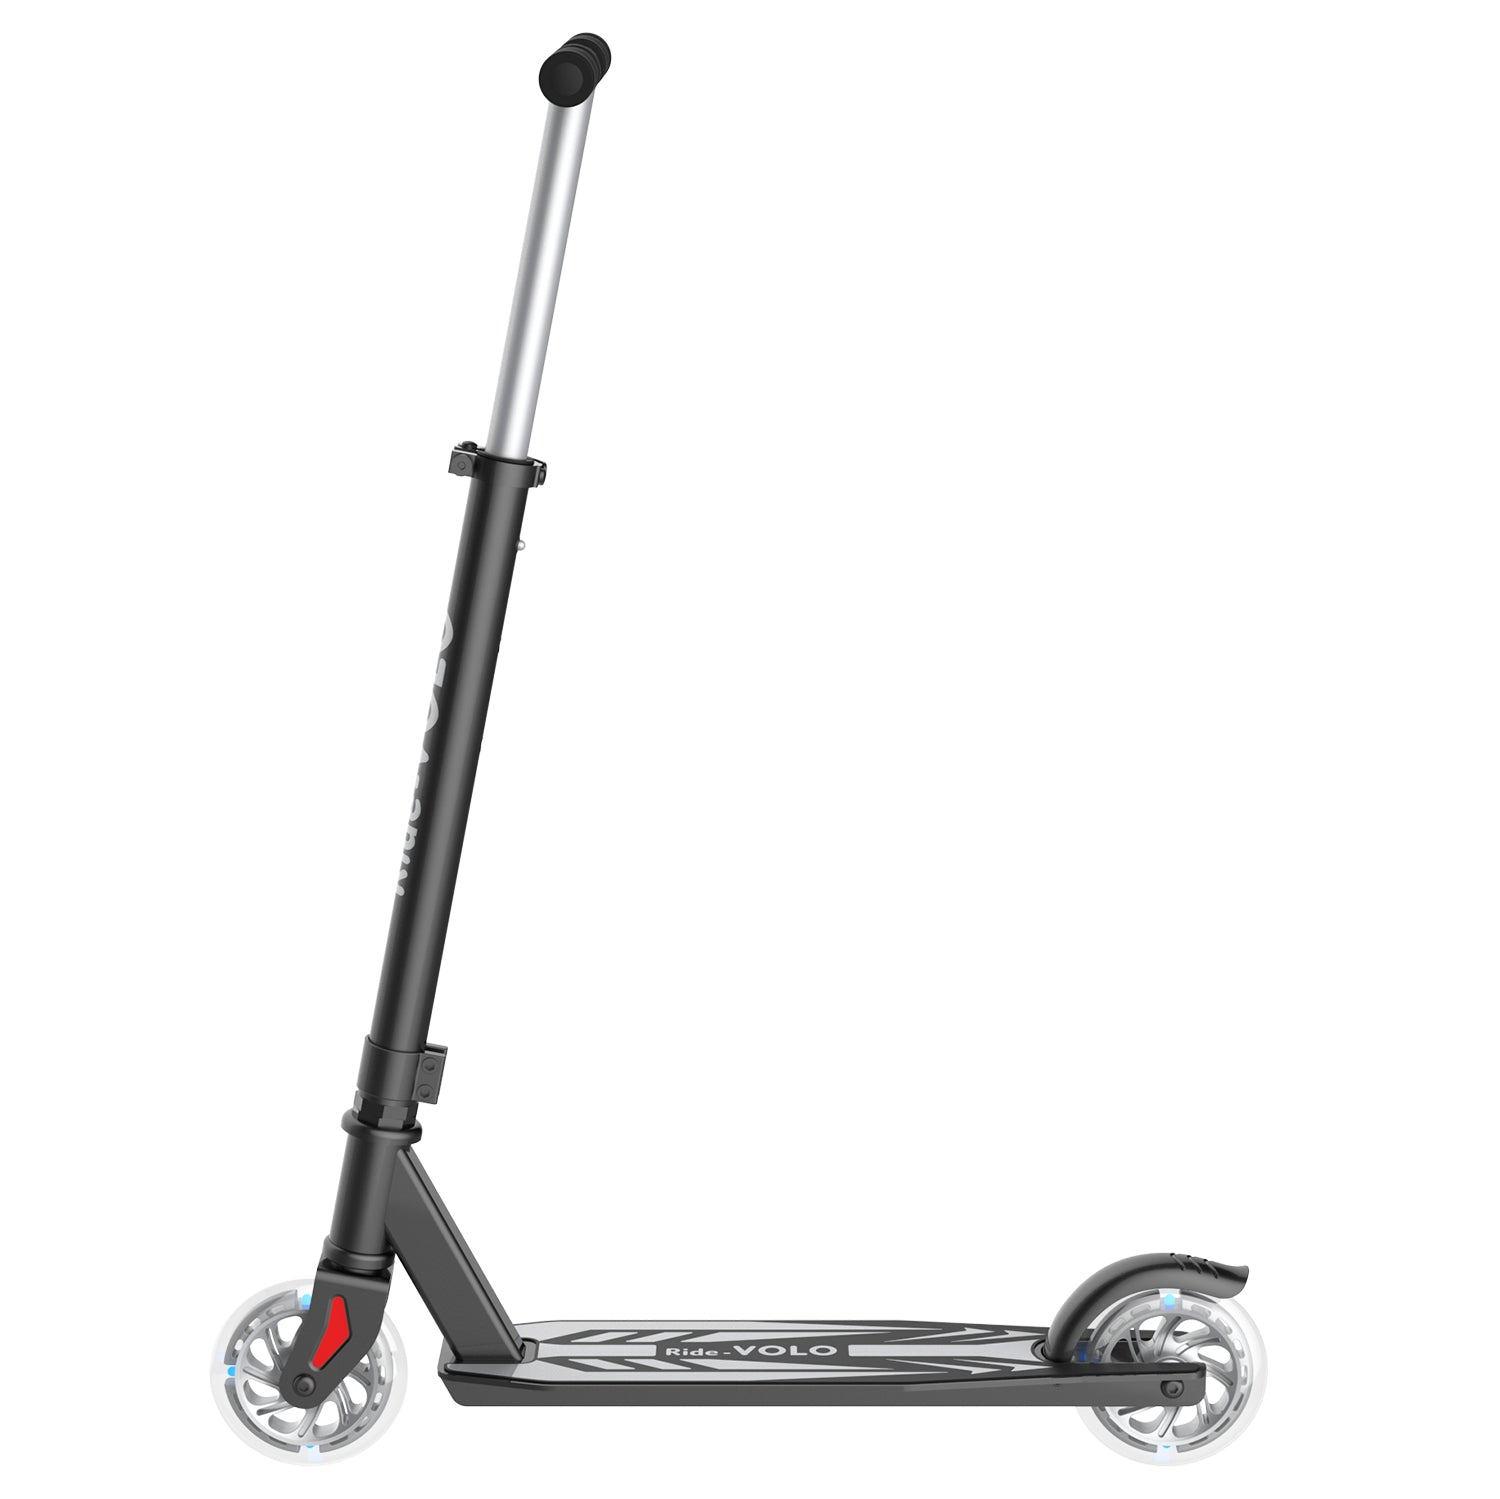 Gray k05 scooter side image